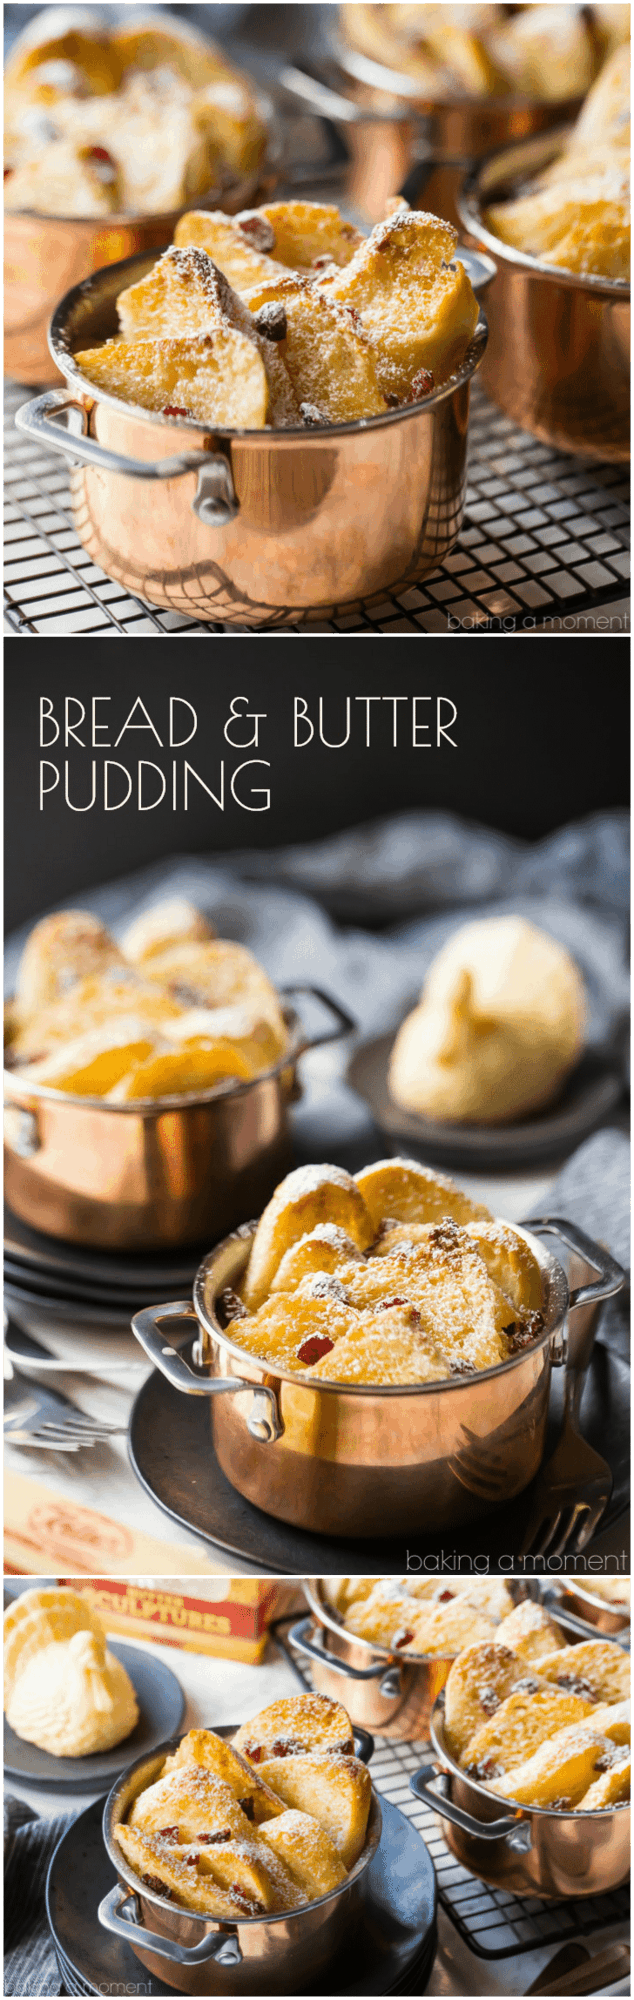 Bread & butter pudding: this is comfort food at its very best! The bread gets so toasty & crisp on top, creamy & rich underneath. I make this every winter and my family goes crazy for it! #food #desserts #comfortfood #custard #breadpudding #baking